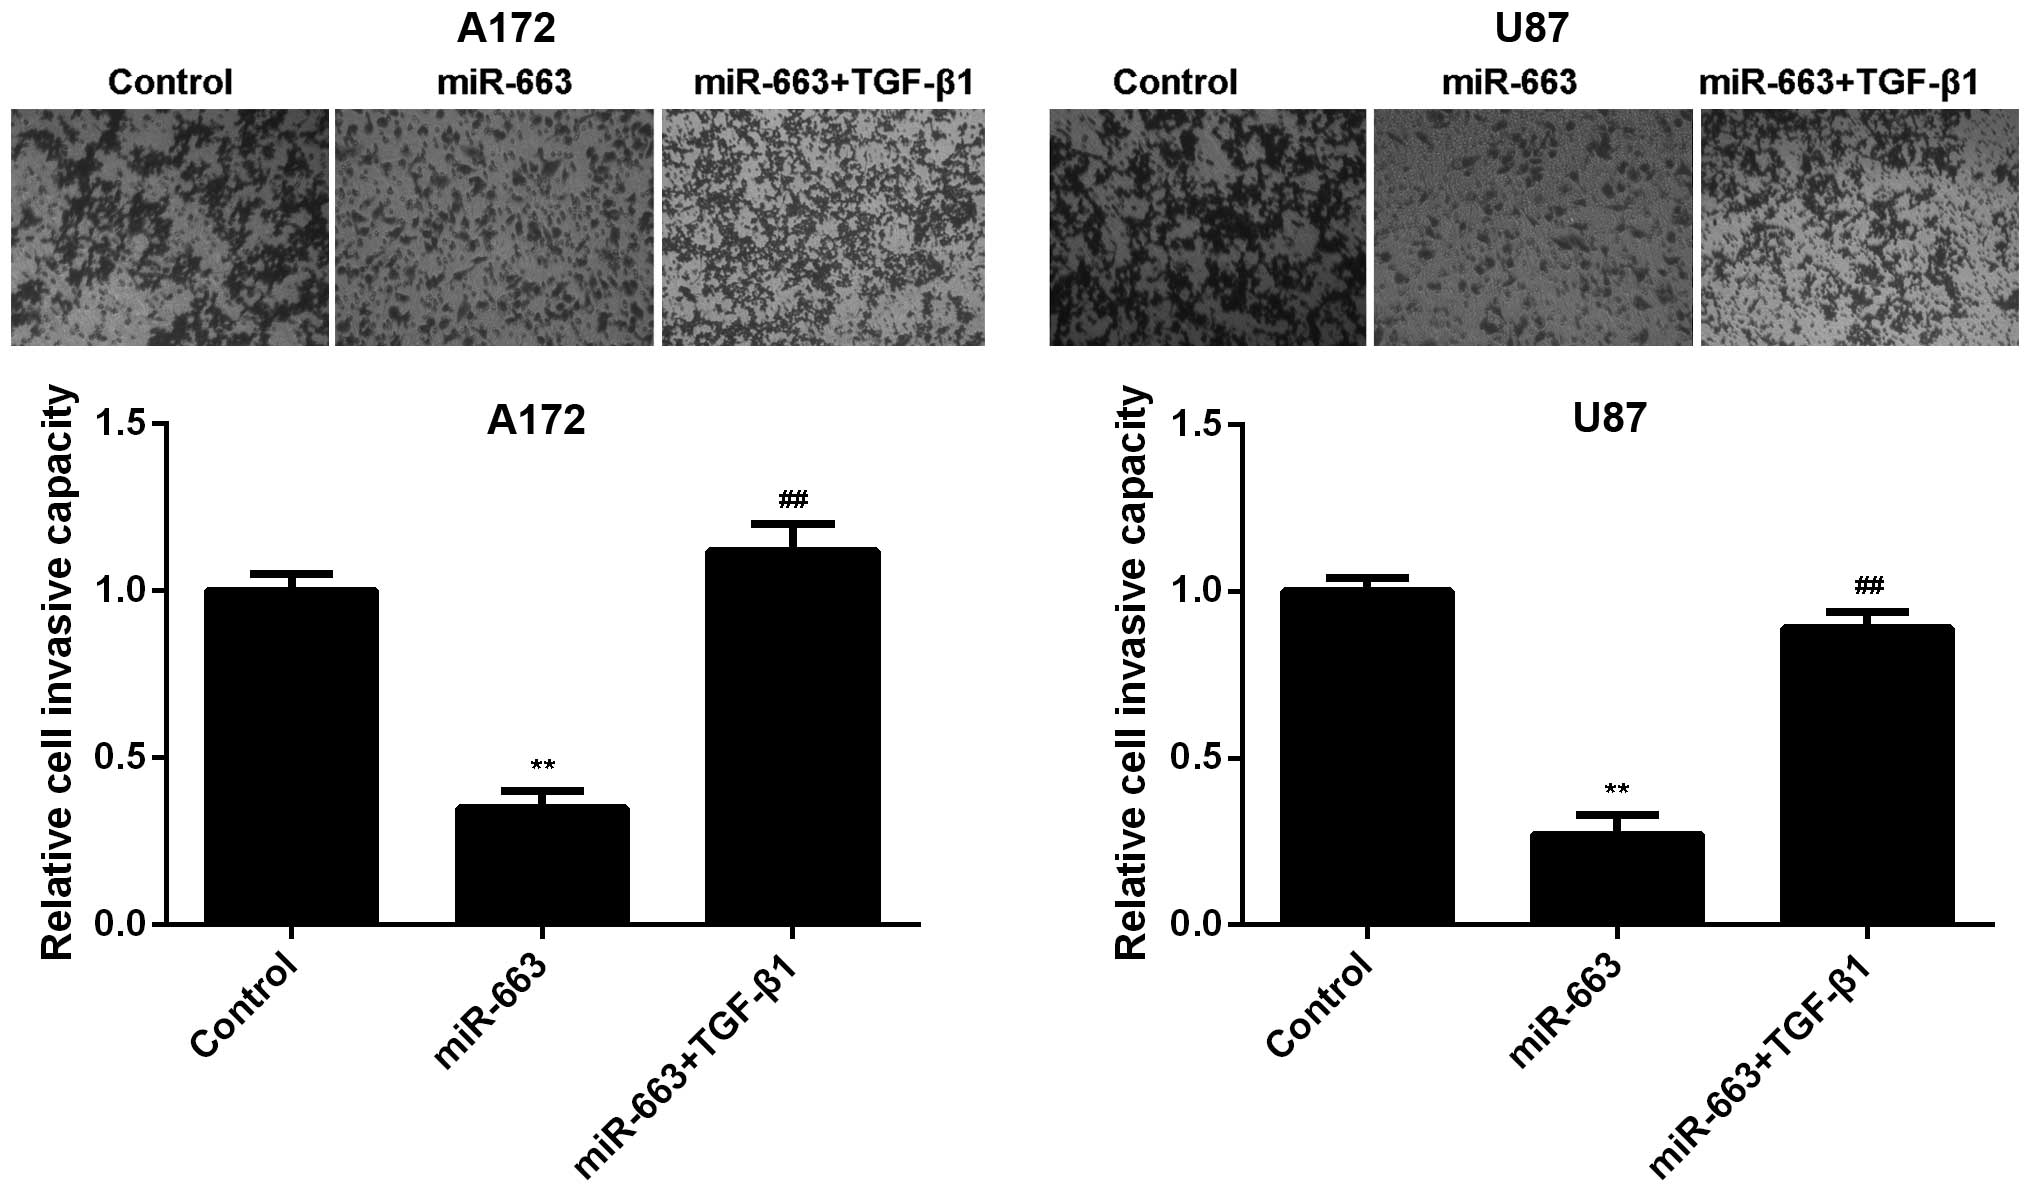 A Transwell assay was performed to determine the cell migration and  invasion of the glioblastoma A172 and U87 cells transfected with the miR-663  mimic ...